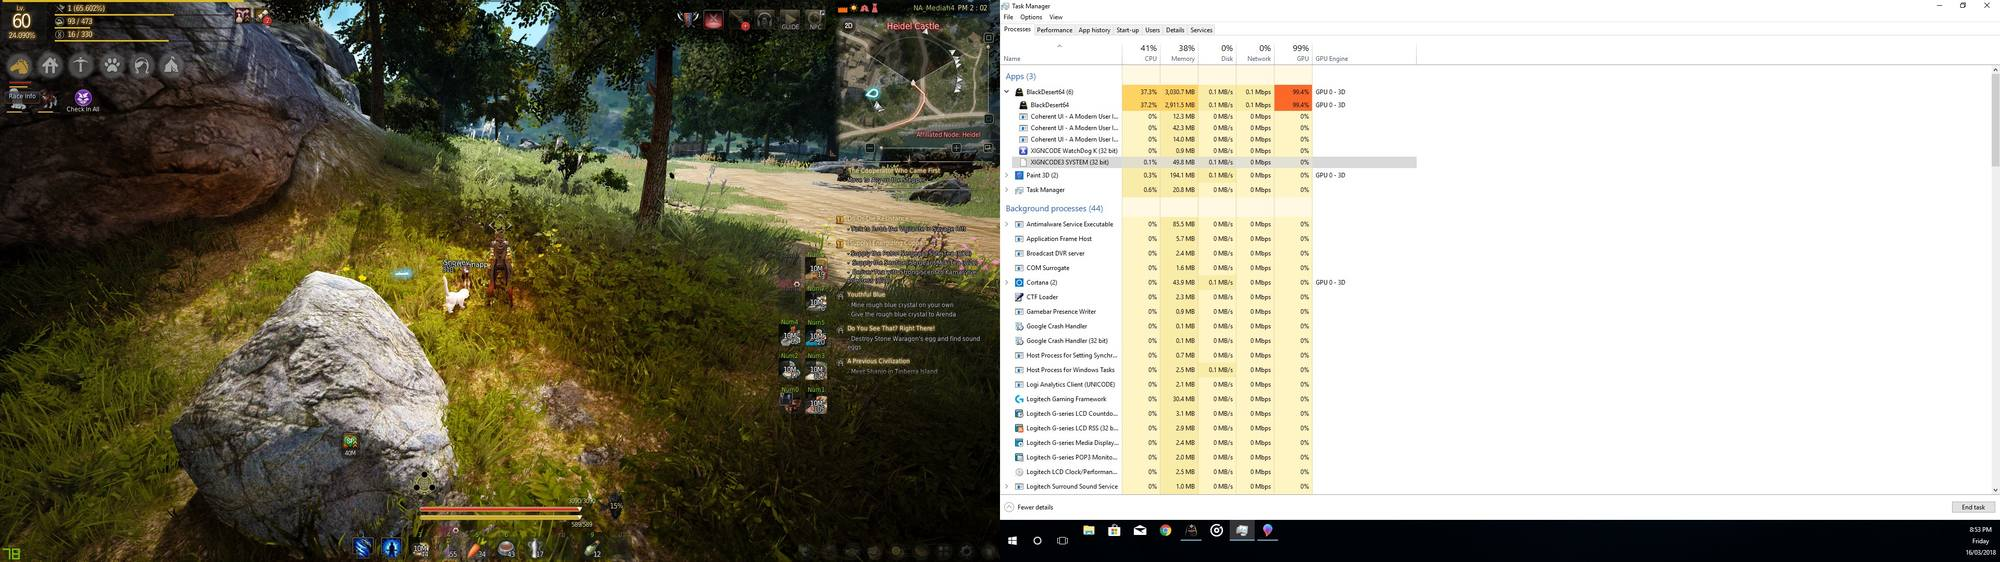 Who can solve this problem? Game not using the full power of my GPU